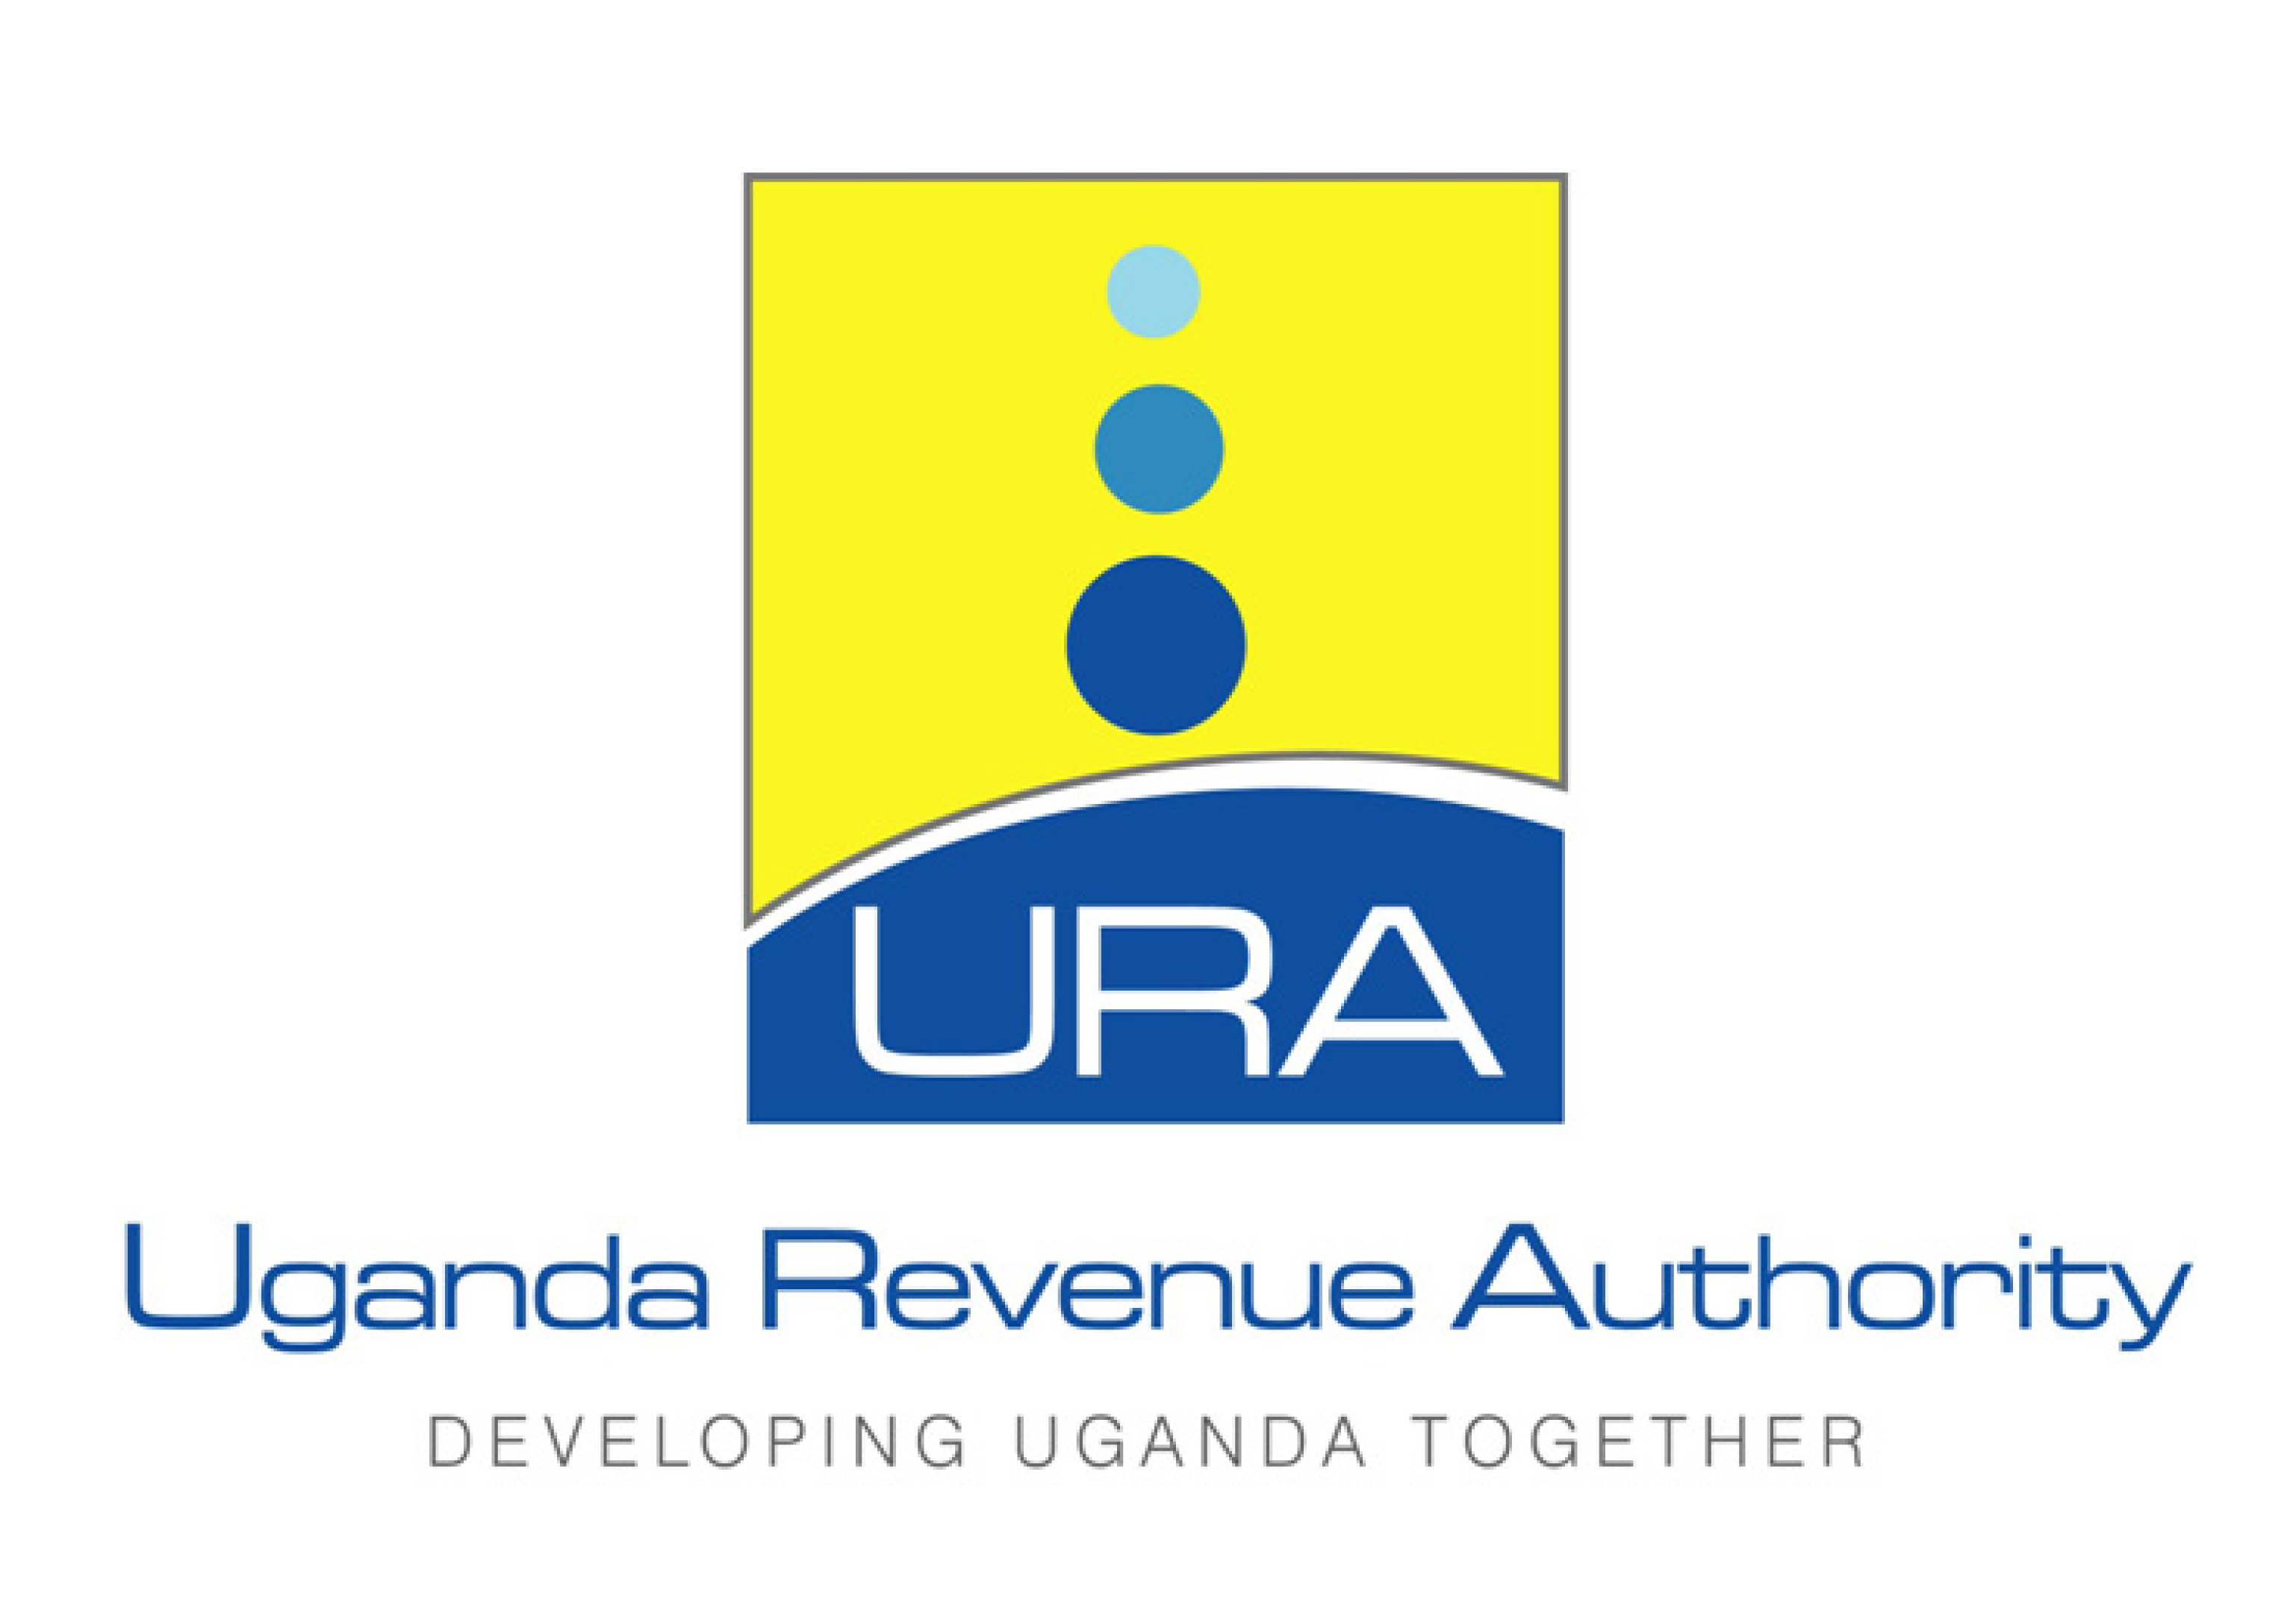 URA Jobs 2019 Internship Programme 2019URA Jobs 2019, Uganda Revenue Authority (URA) Jobs